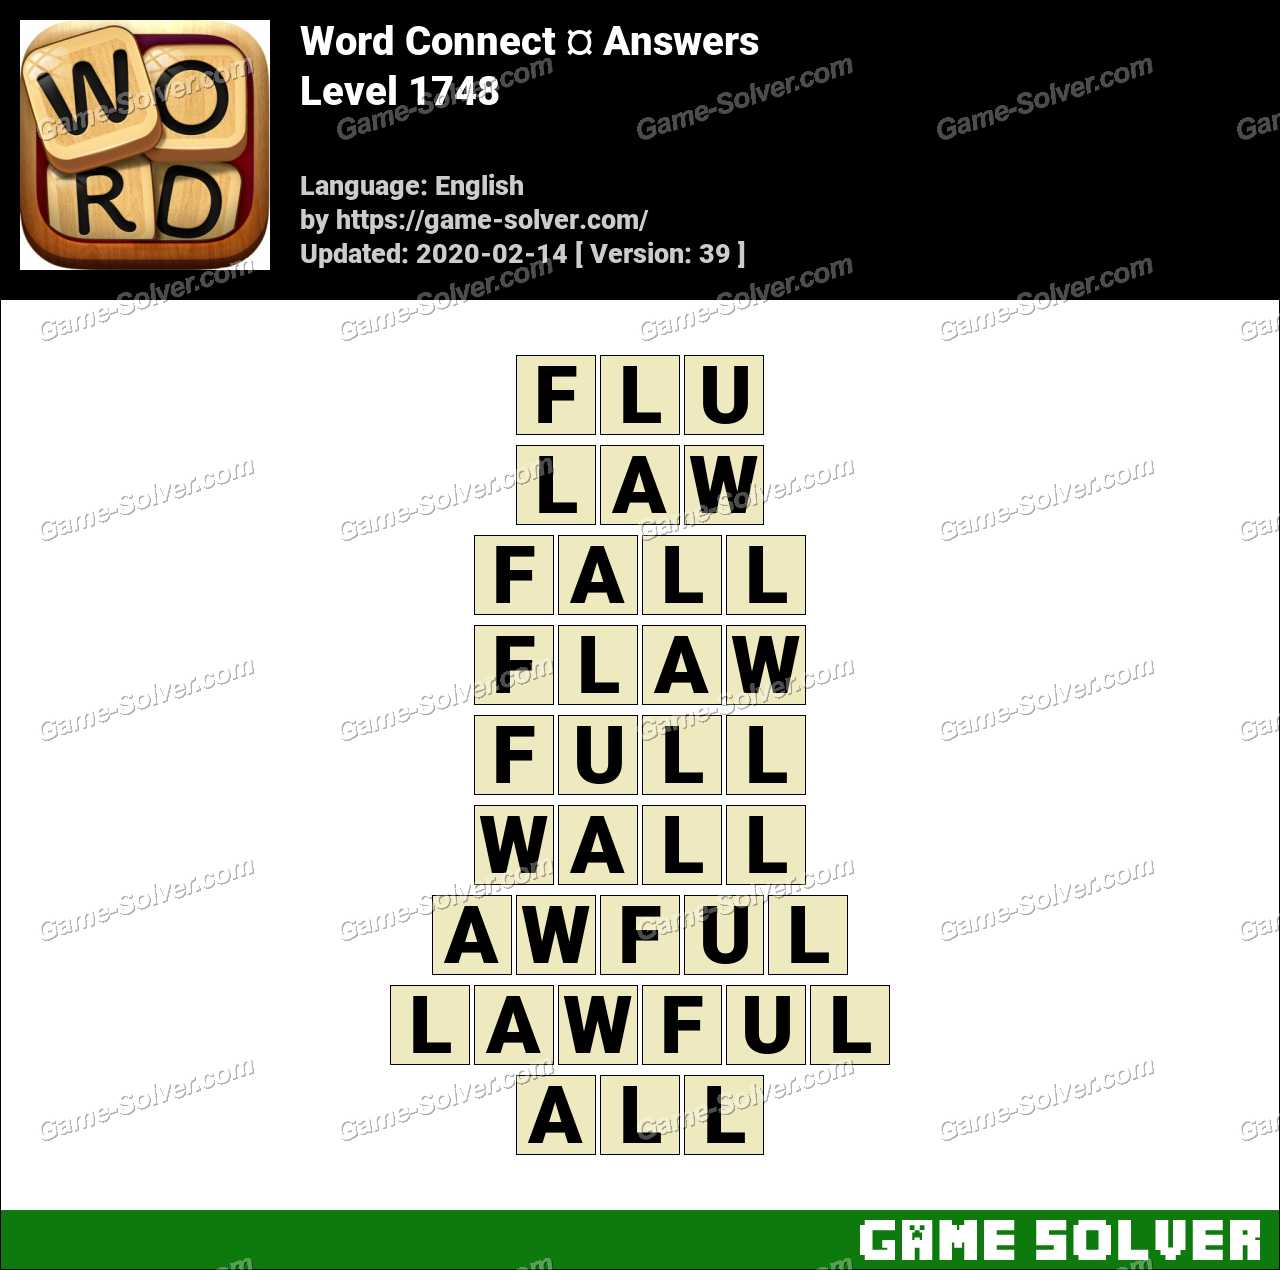 Word Connect Level 1748 Answers